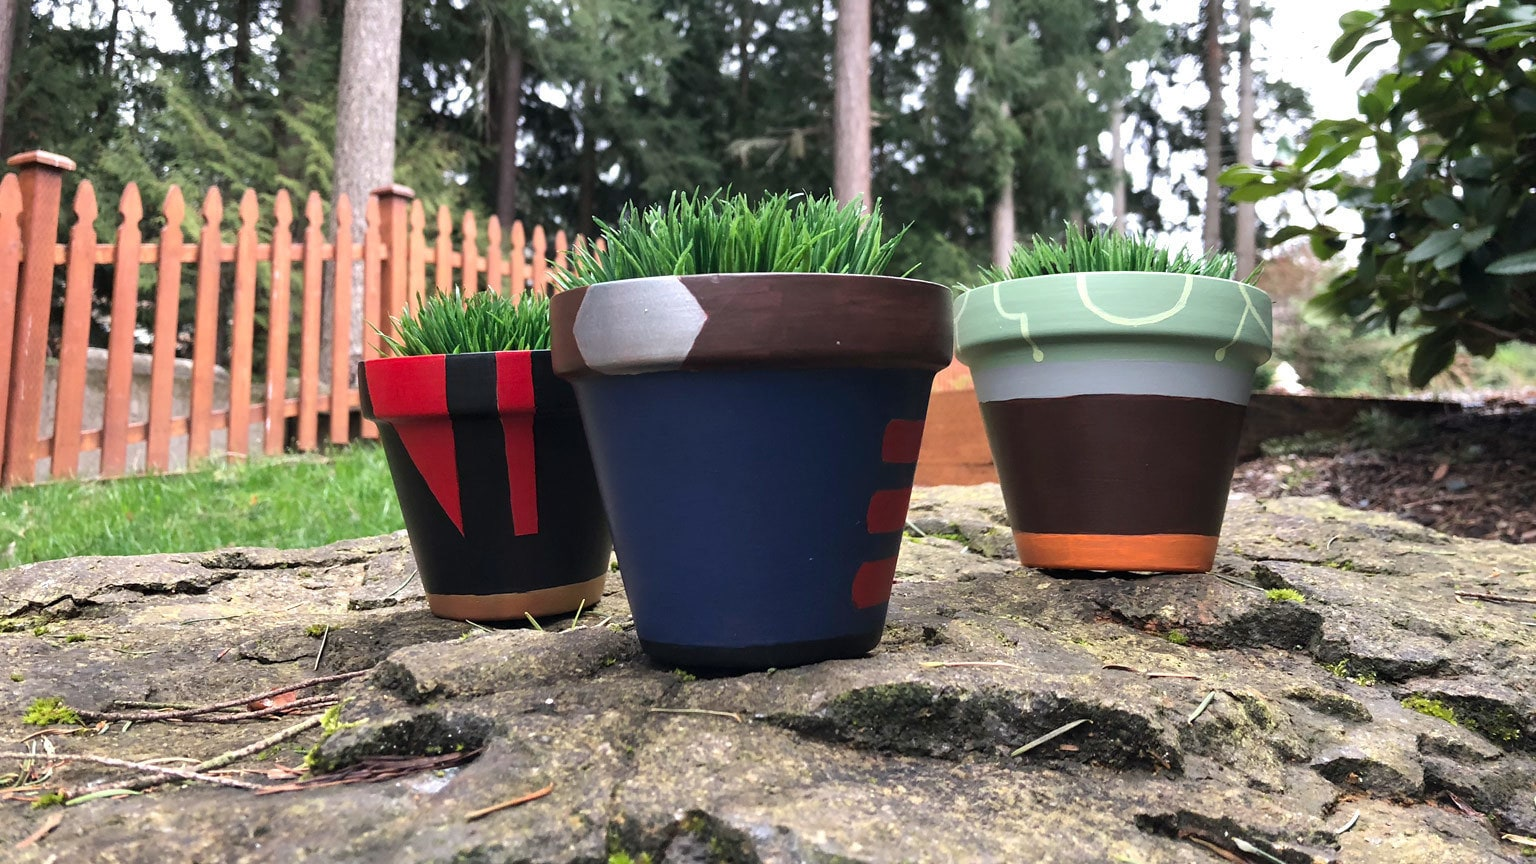 Paint the Best Star Pilot Planters in the Galaxy